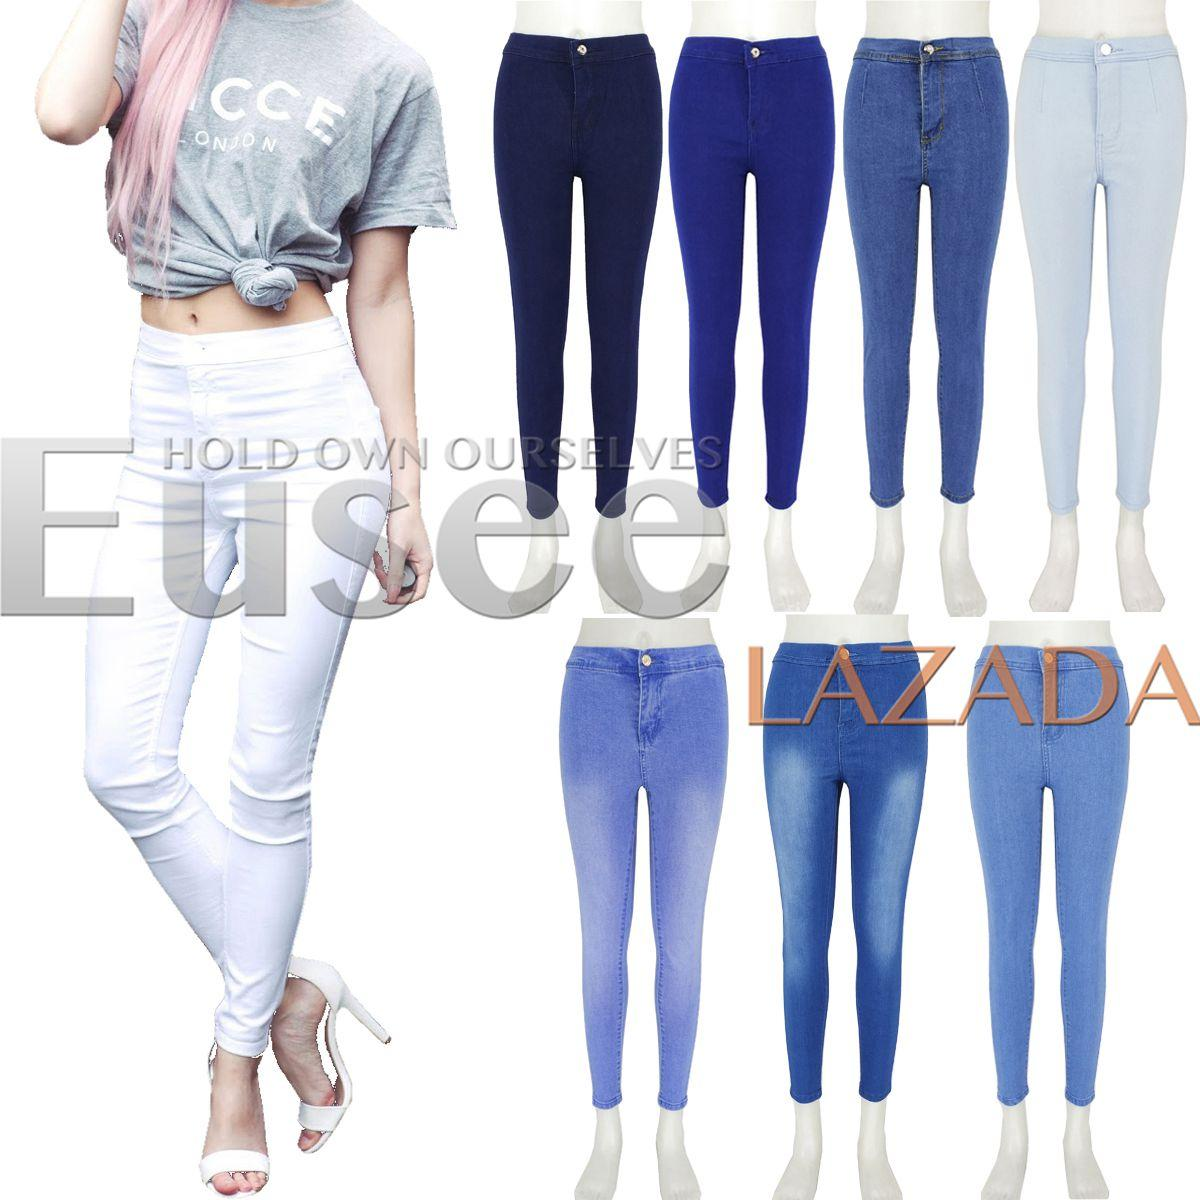 d99f37e262 Jeans for Women for sale - Fashion Jeans online brands